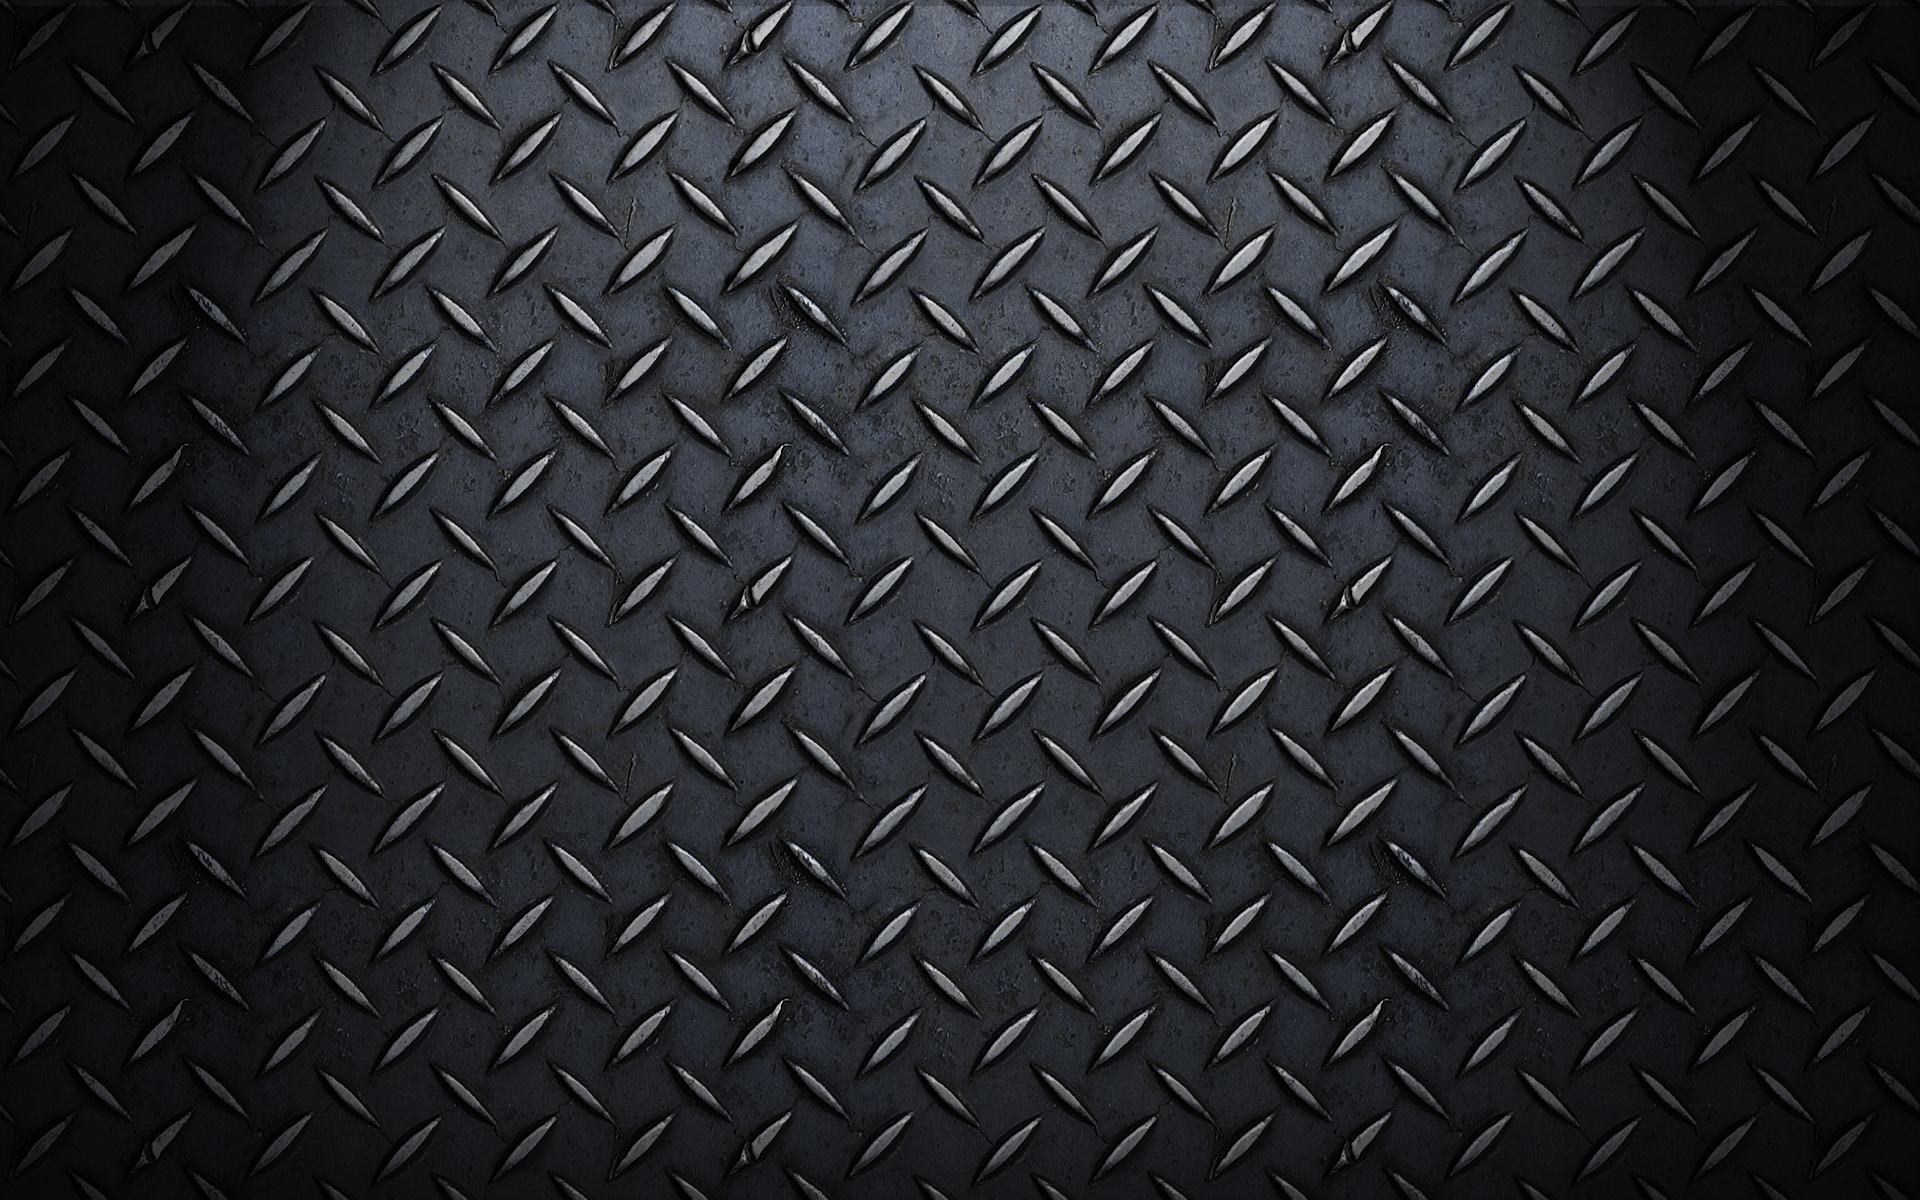 Metal Hd Png - Diamond Plate PNG HD Transparent Diamond Plate HD.PNG Images ...